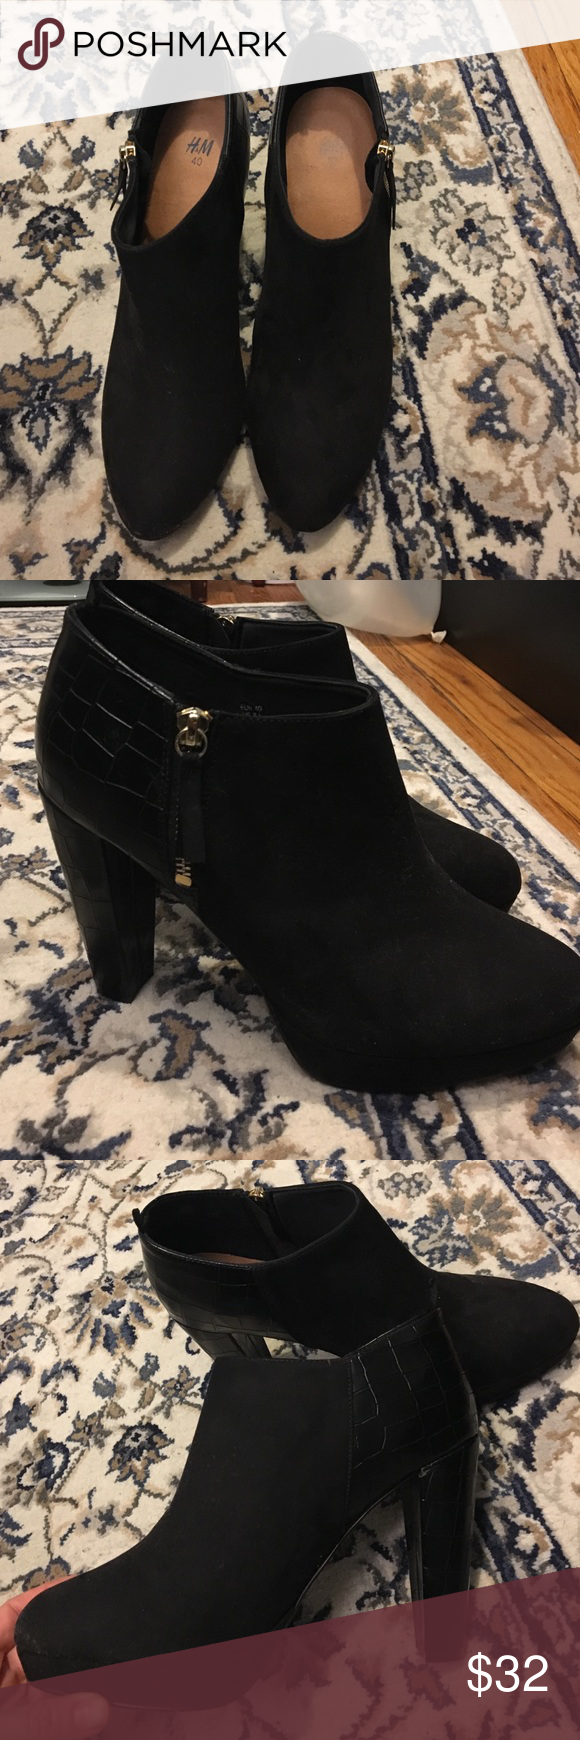 Only worn ONCE heeled ankle boots Beautiful suede and leather boot! Only worn once, selling because I have a foot problem and shouldn't be wearing any heels. Bought 2 months ago from H&M. H&M Shoes Heeled Boots